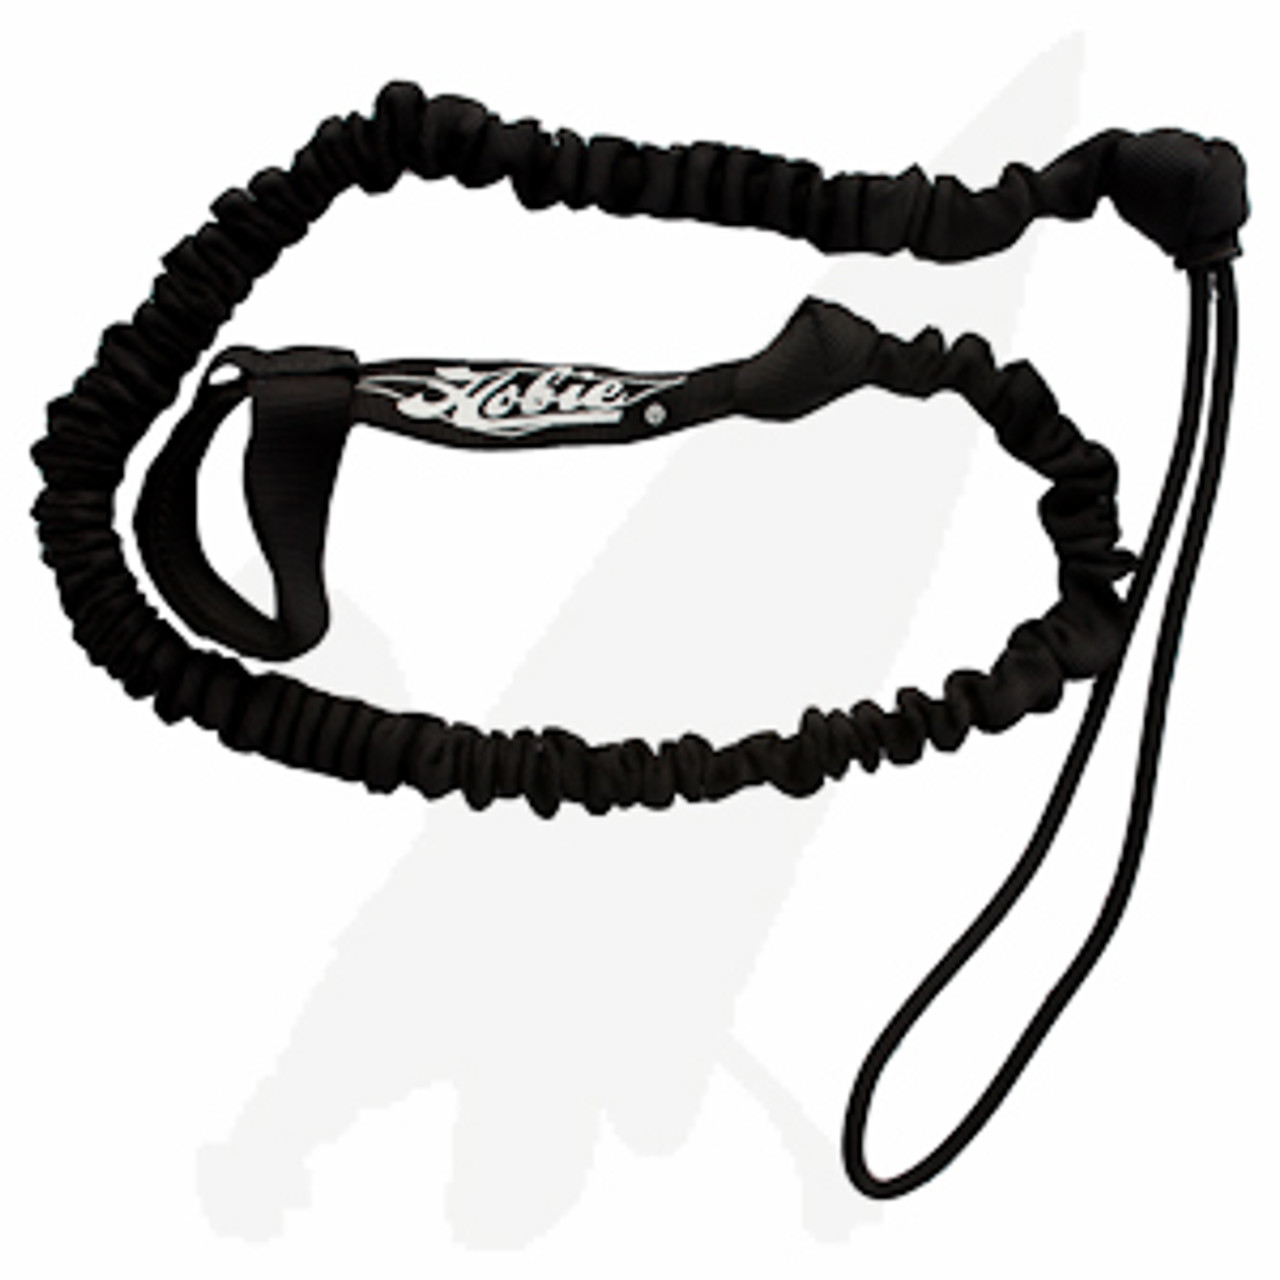 Hobie Web Paddle leash